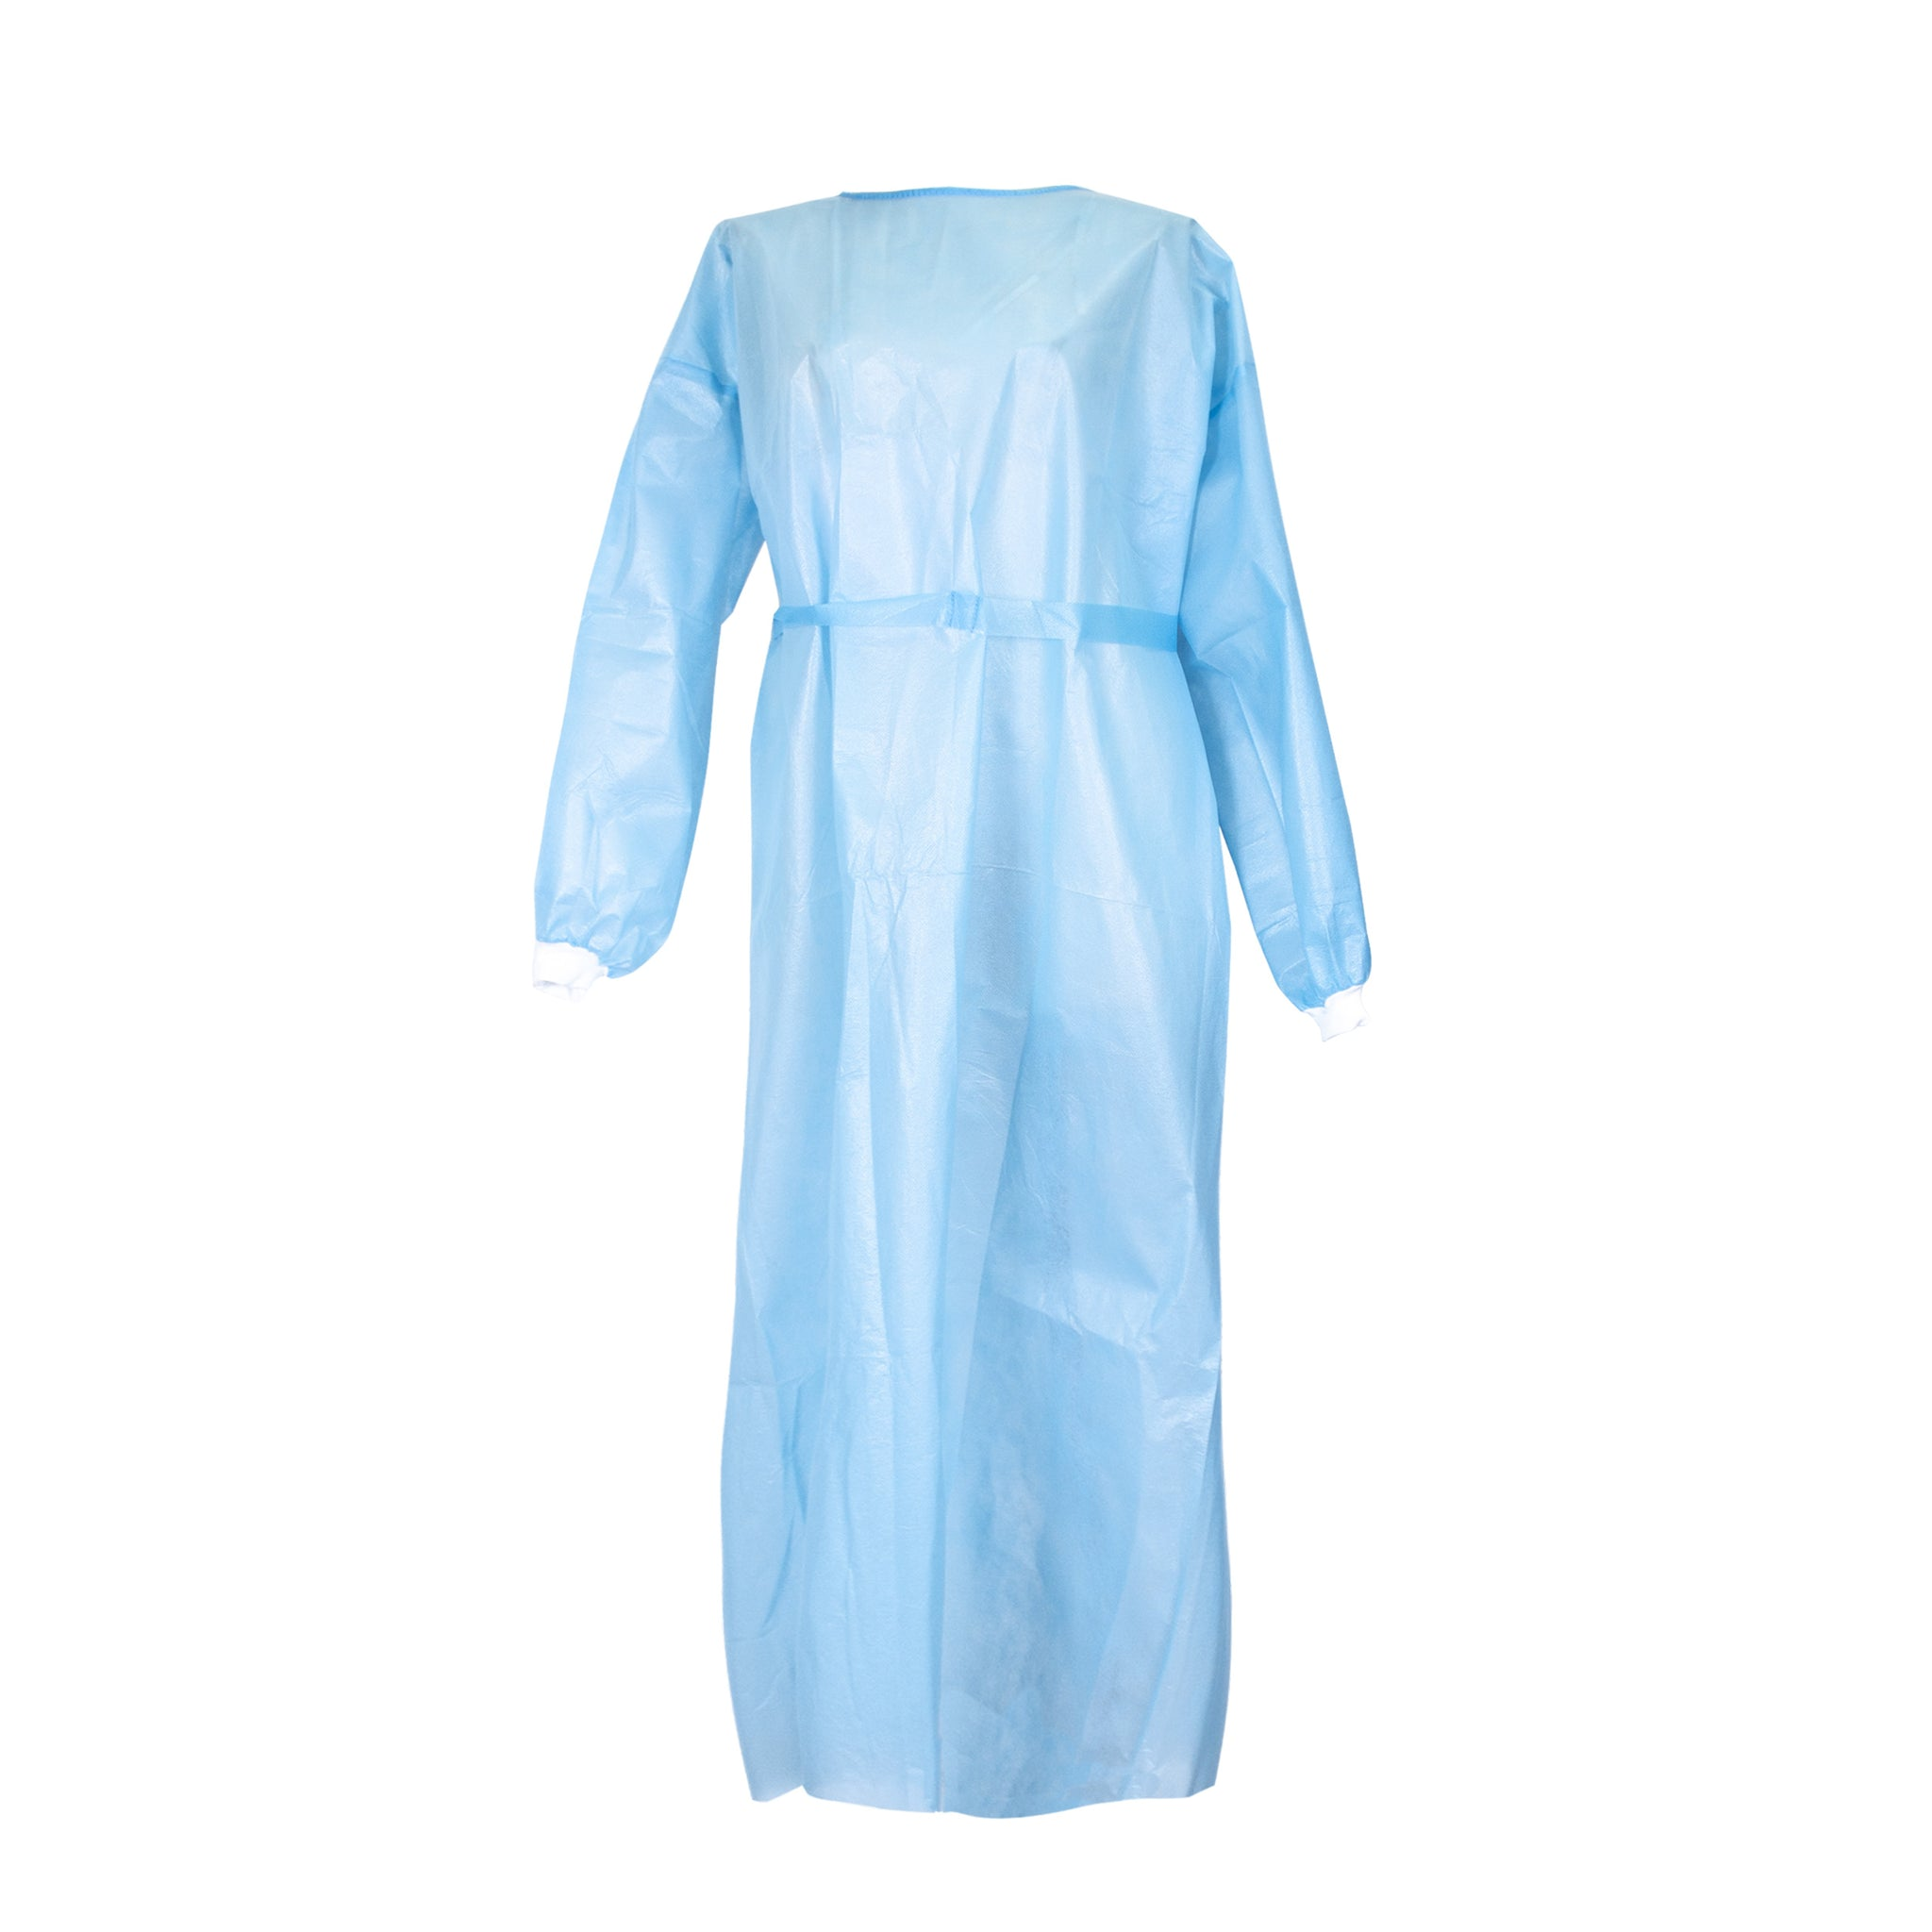 10 Disposable Gowns